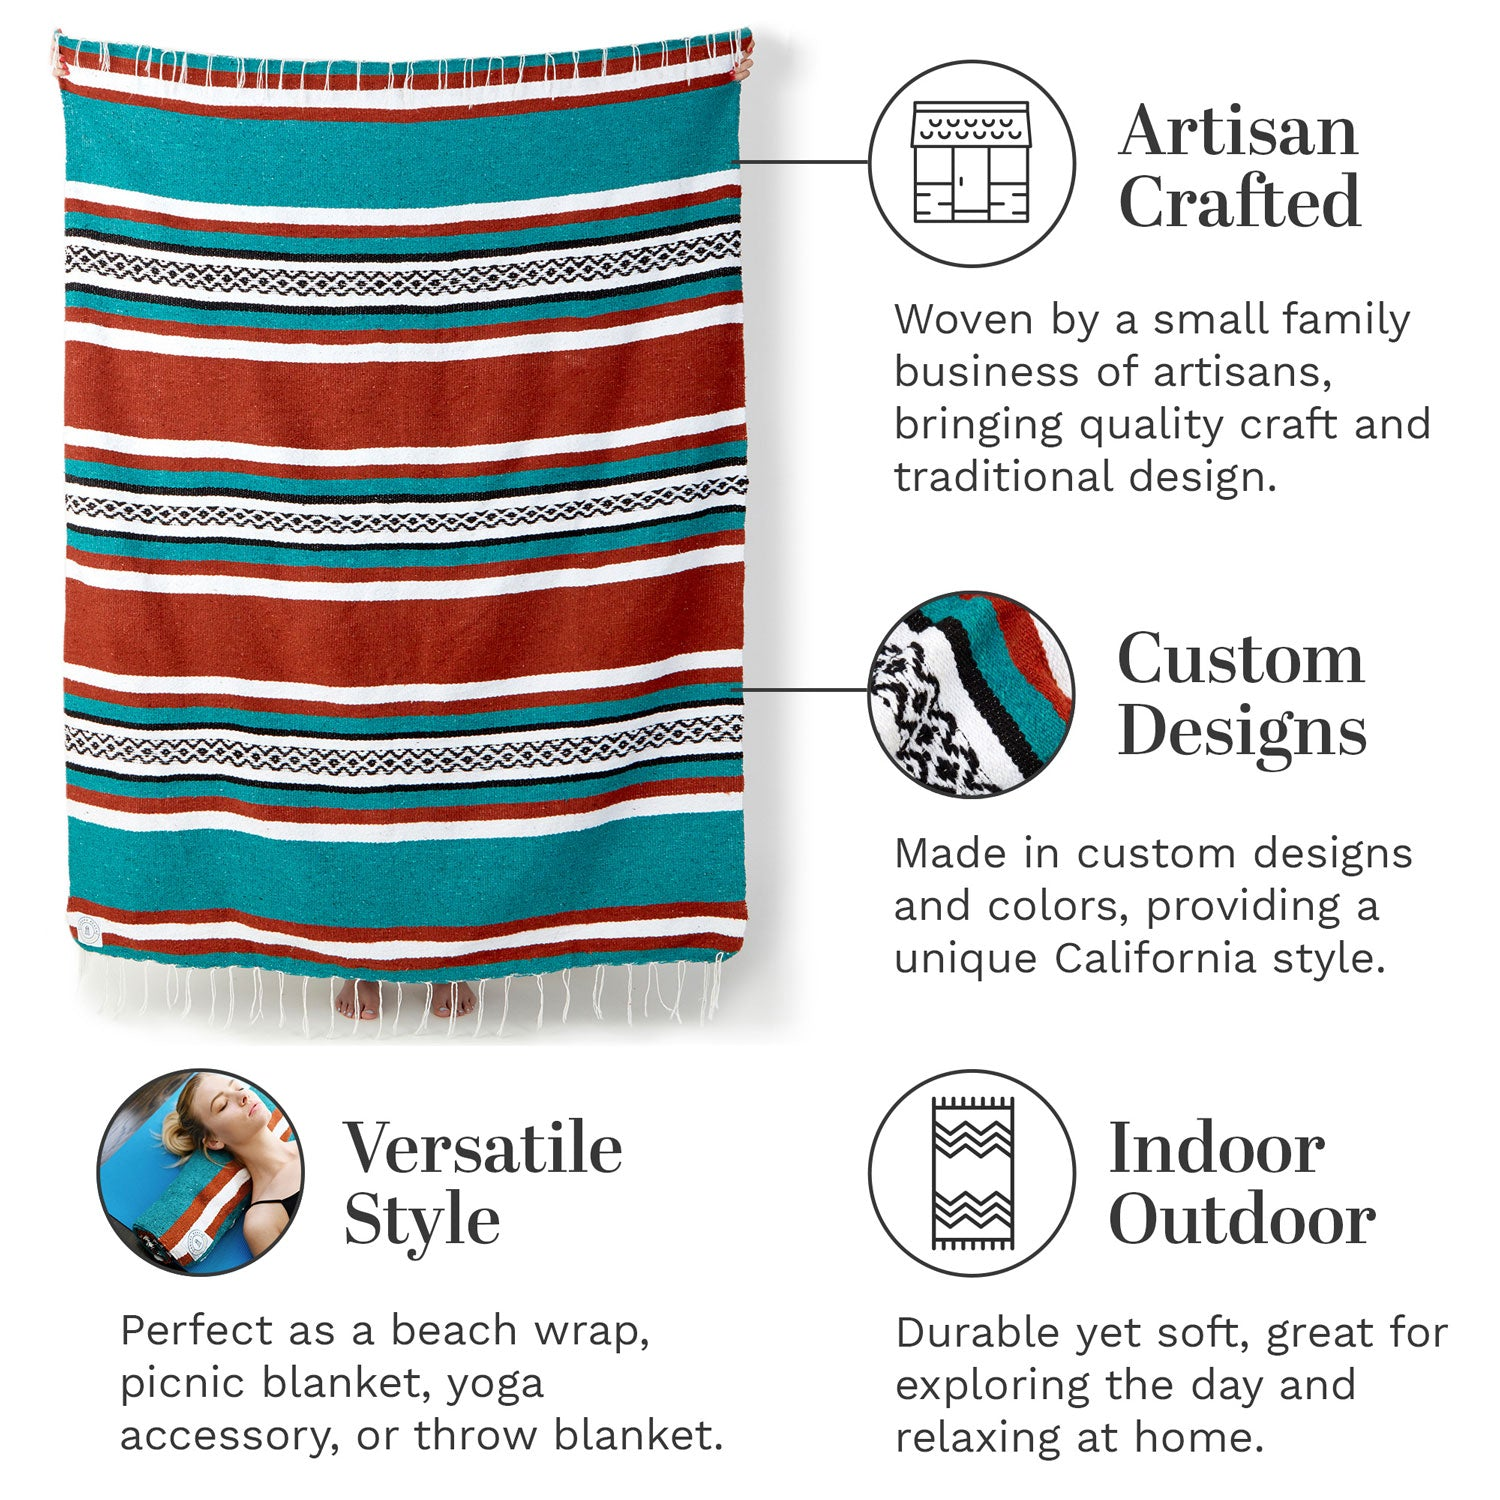 Infographic of our green and orange red Mexican blanket highlighting its versatile style and artisan craftsmanship.